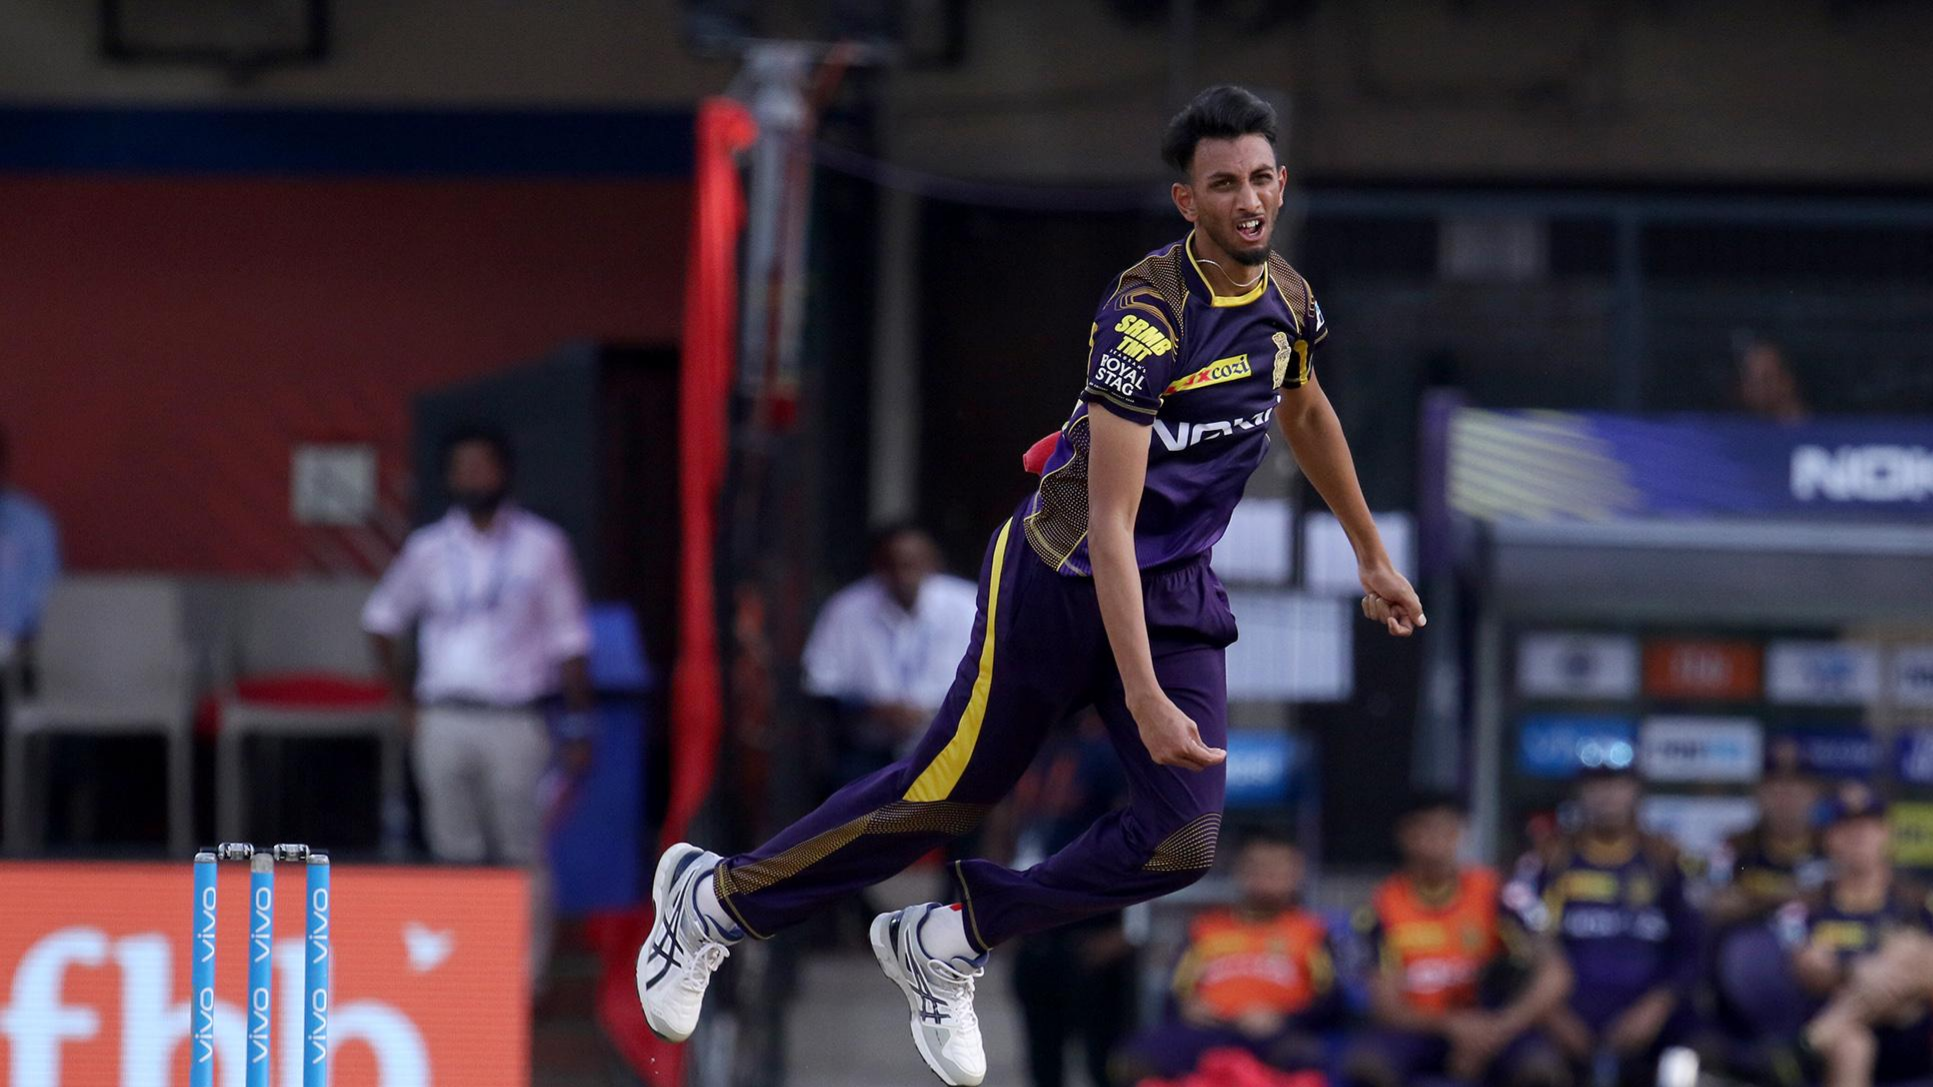 IPL 2018: Match 54, SRH vs KKR: Prasidh Krishna takes 4 as SRH score 172 for 9 batting first